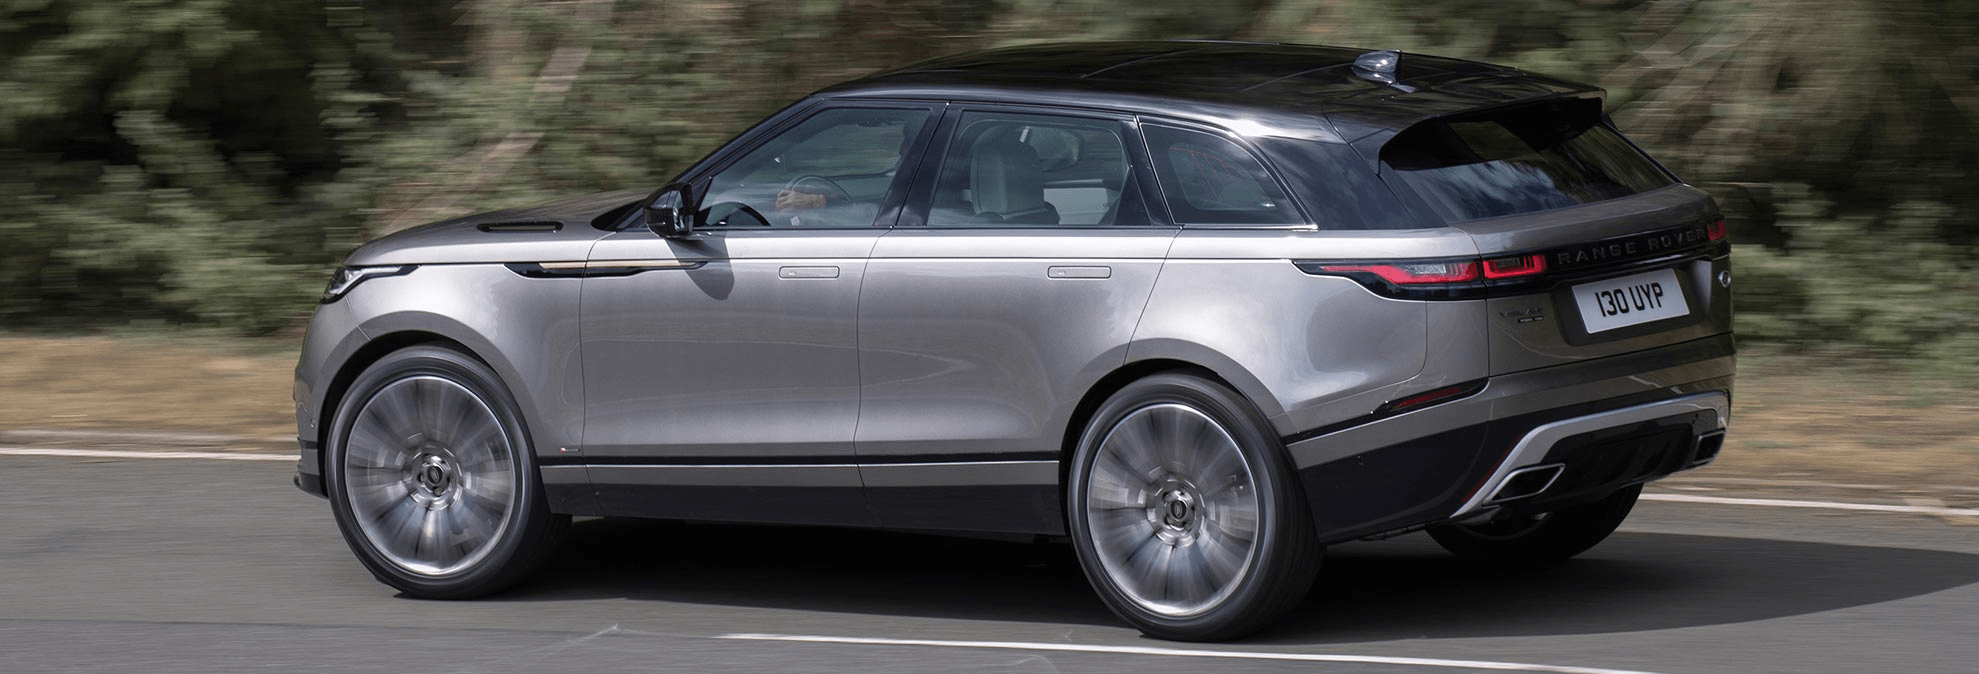 2018 Land Rover Velar Looks To Compete With Sporty Suvs